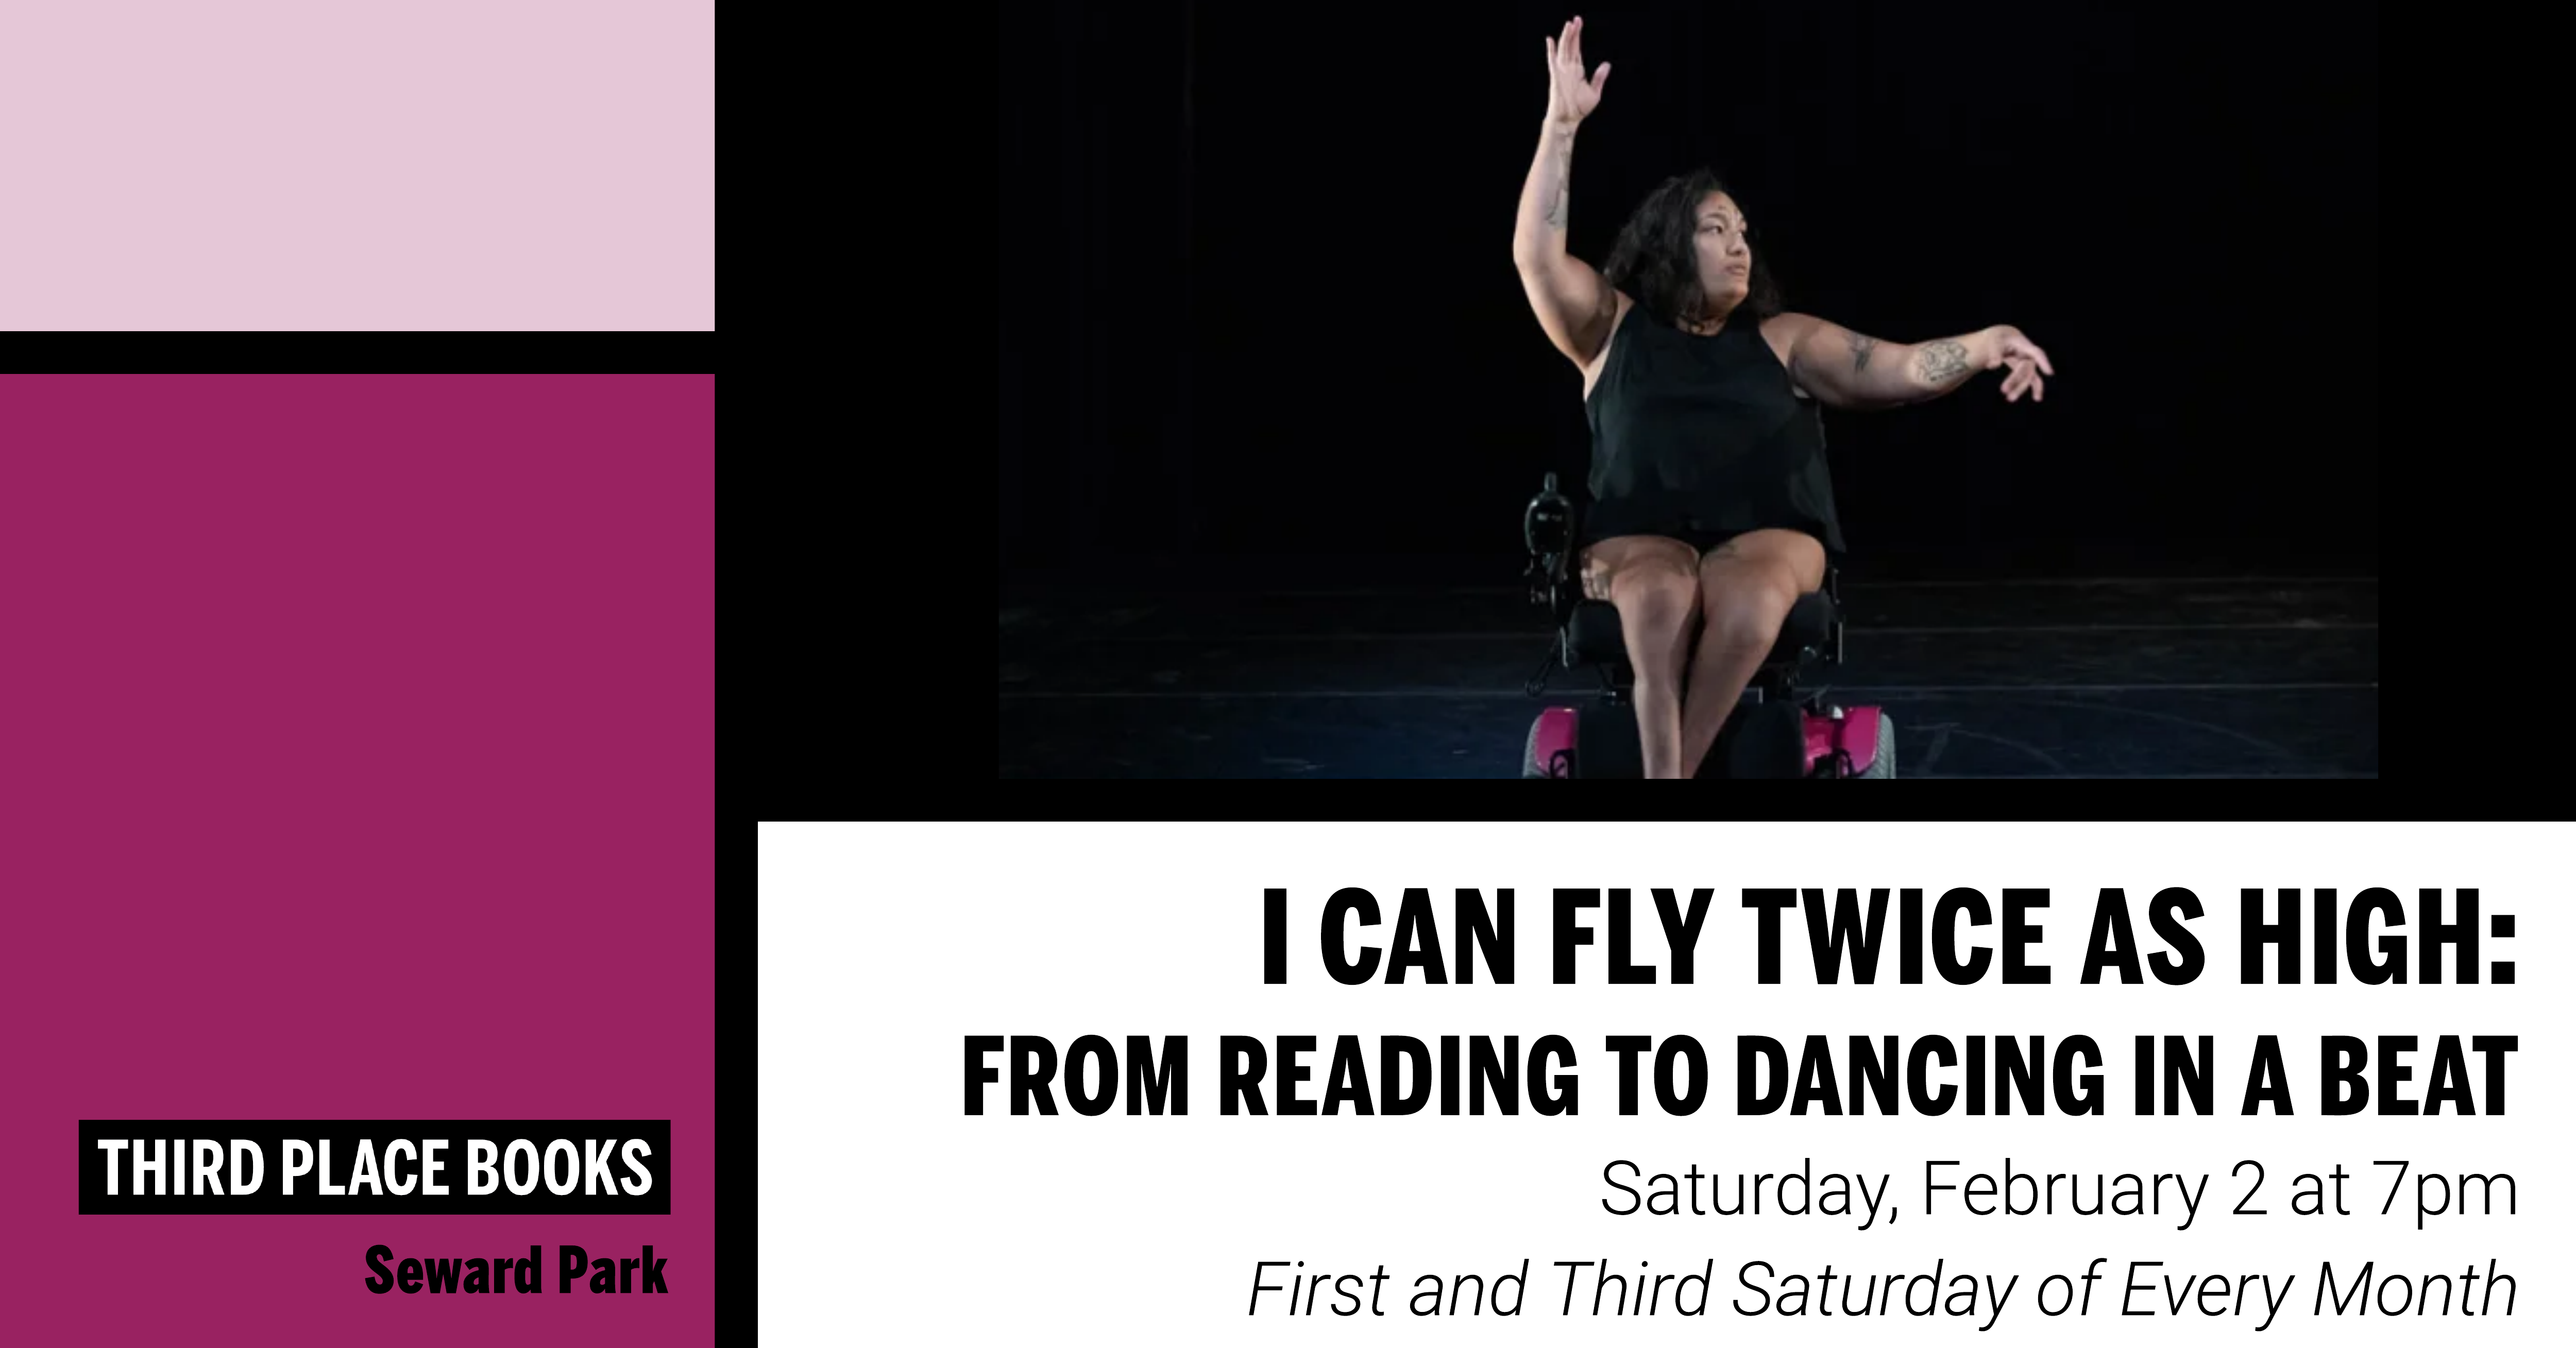 I Can Fly Twice As High: A dance class with Neve on Saturday, February 2 at 7pm